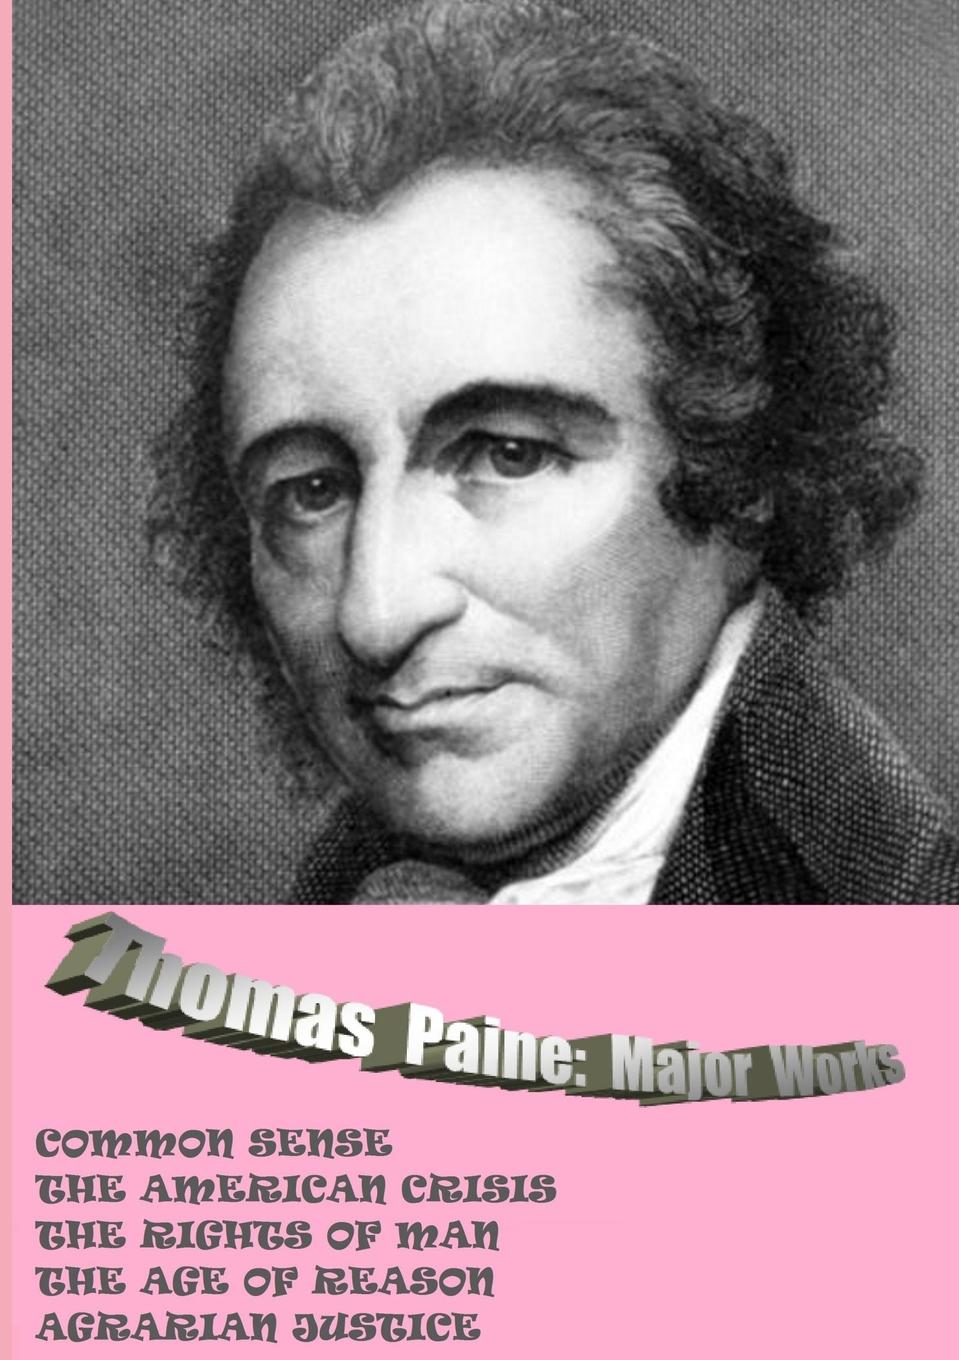 лучшая цена Thomas Paine Thomas Paine. Major Works. Common Sense / The American Crisis / The Rights Of Man / The Age Of Reason / Agrarian Justice